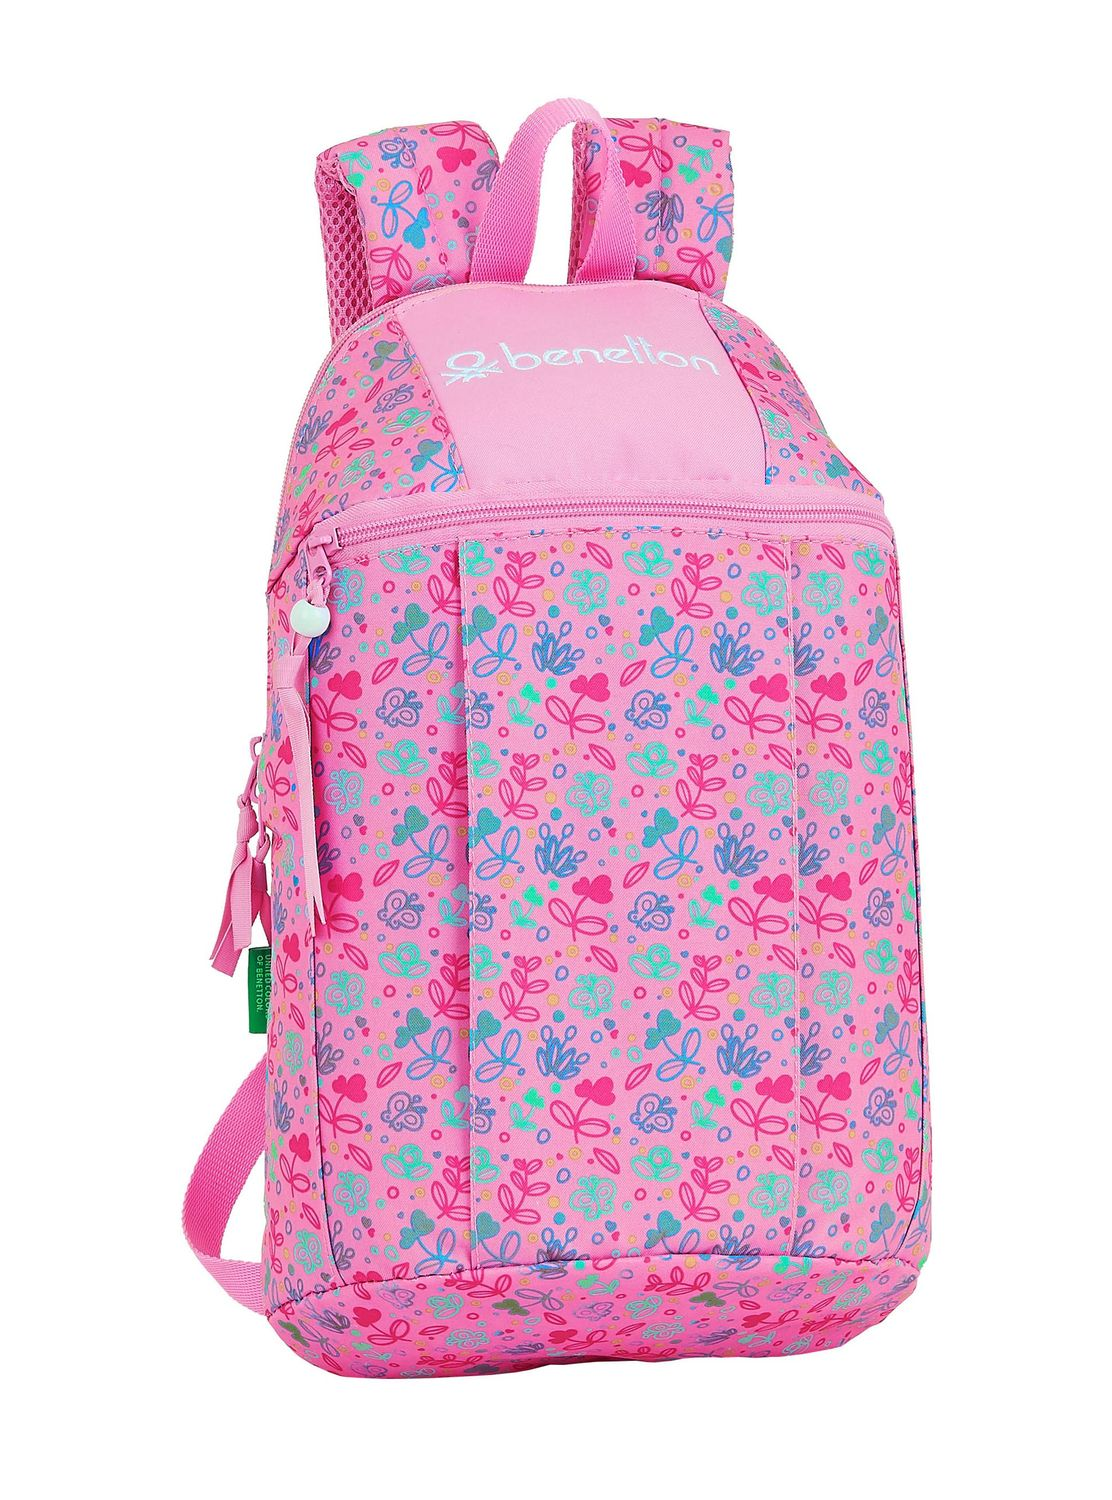 BENETTON BUTTERFLIES Backpack Rucksack 39cm – image 1